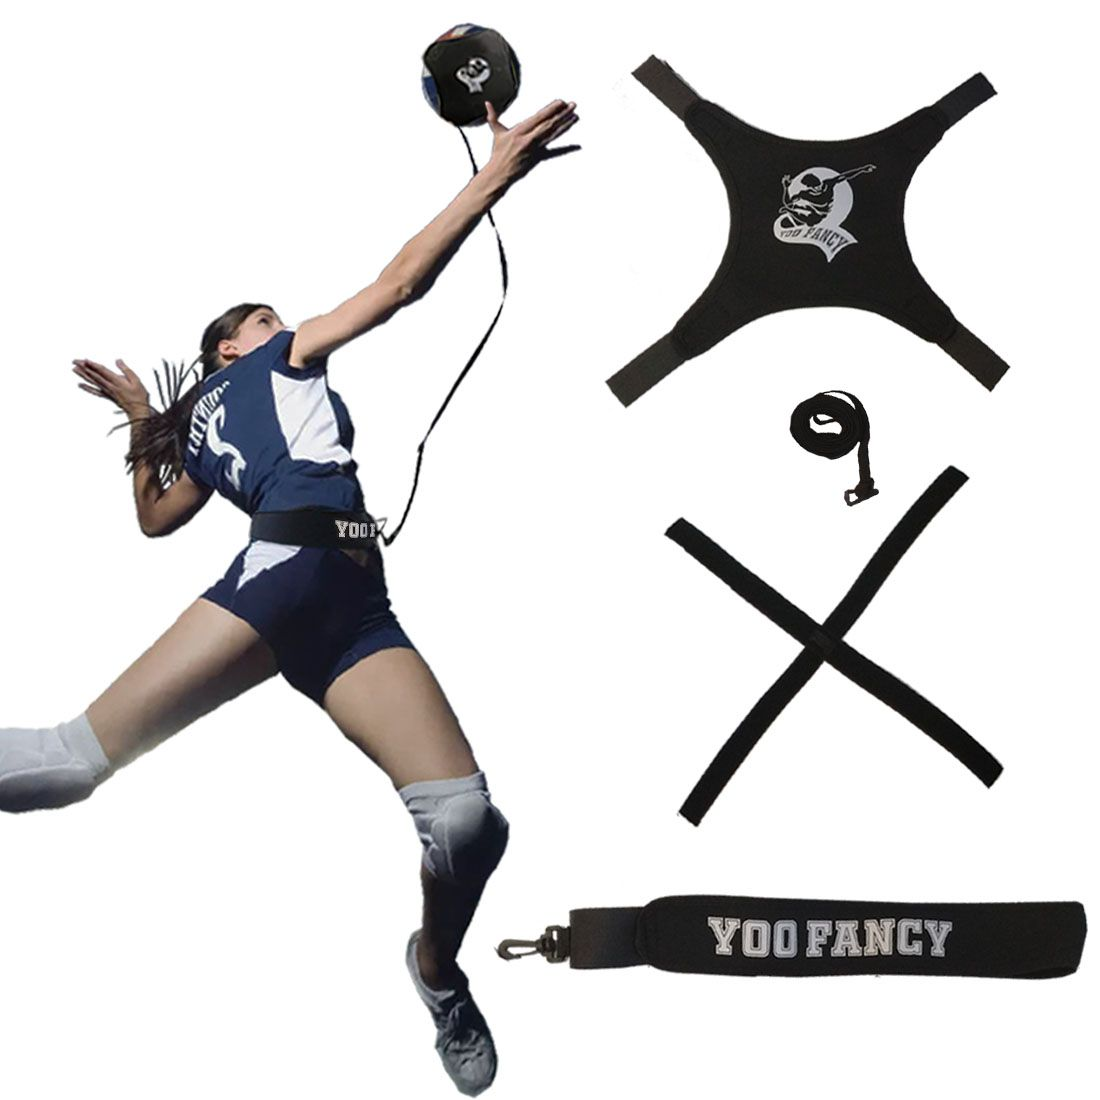 Do You Like Playing Volleyball This Volleyball Training Equipment Makes Solo Training A W Volleyball Training Volleyball Training Equipment Training Equipment